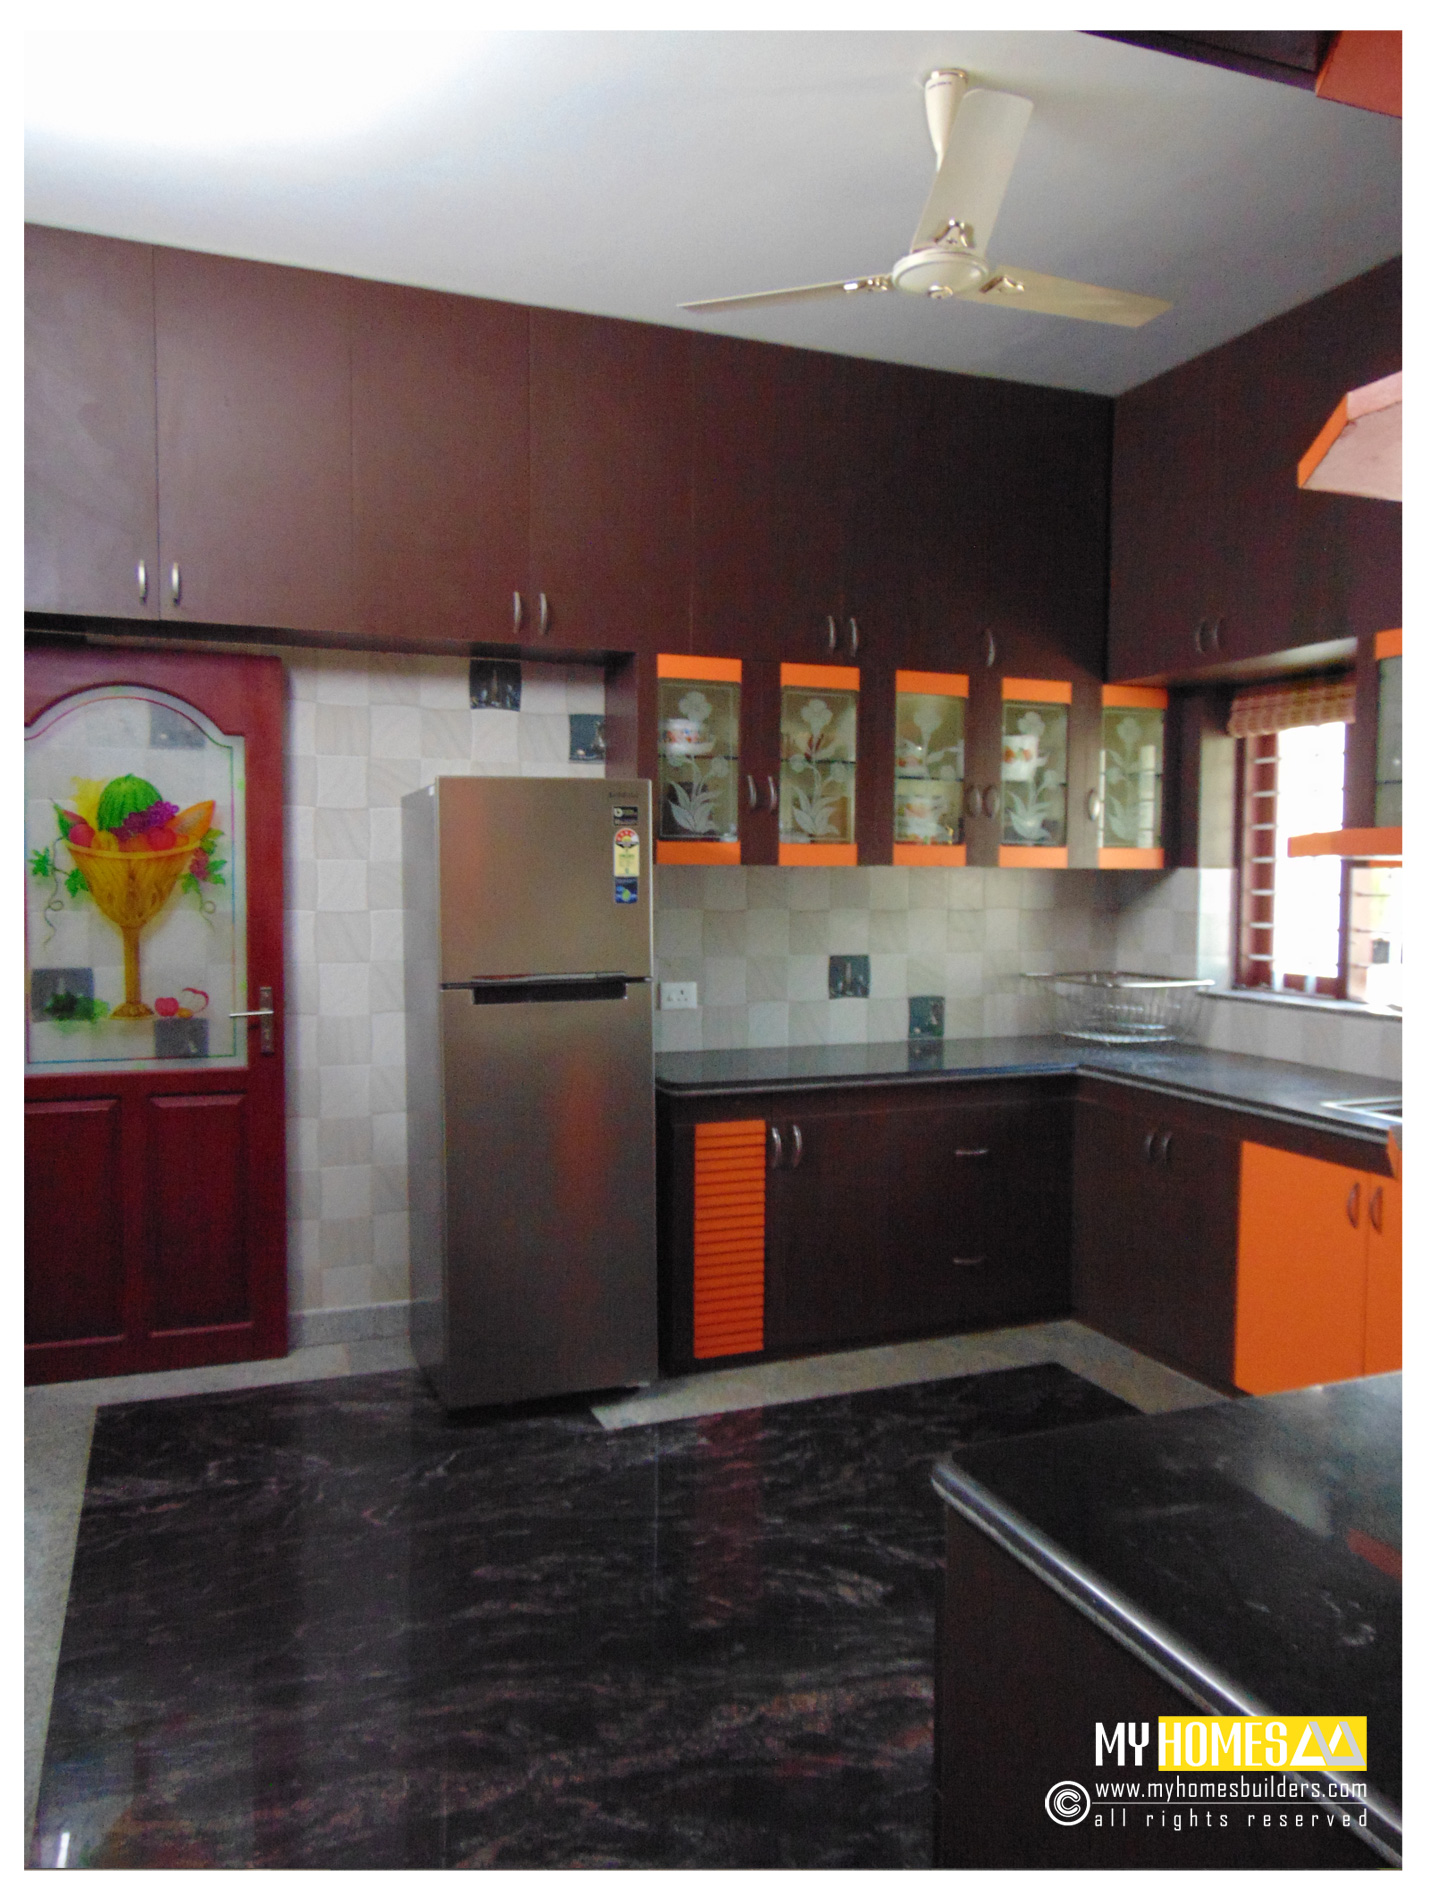 Kerala kitchen designs idea in modular style for house in for Kitchen kitchen design